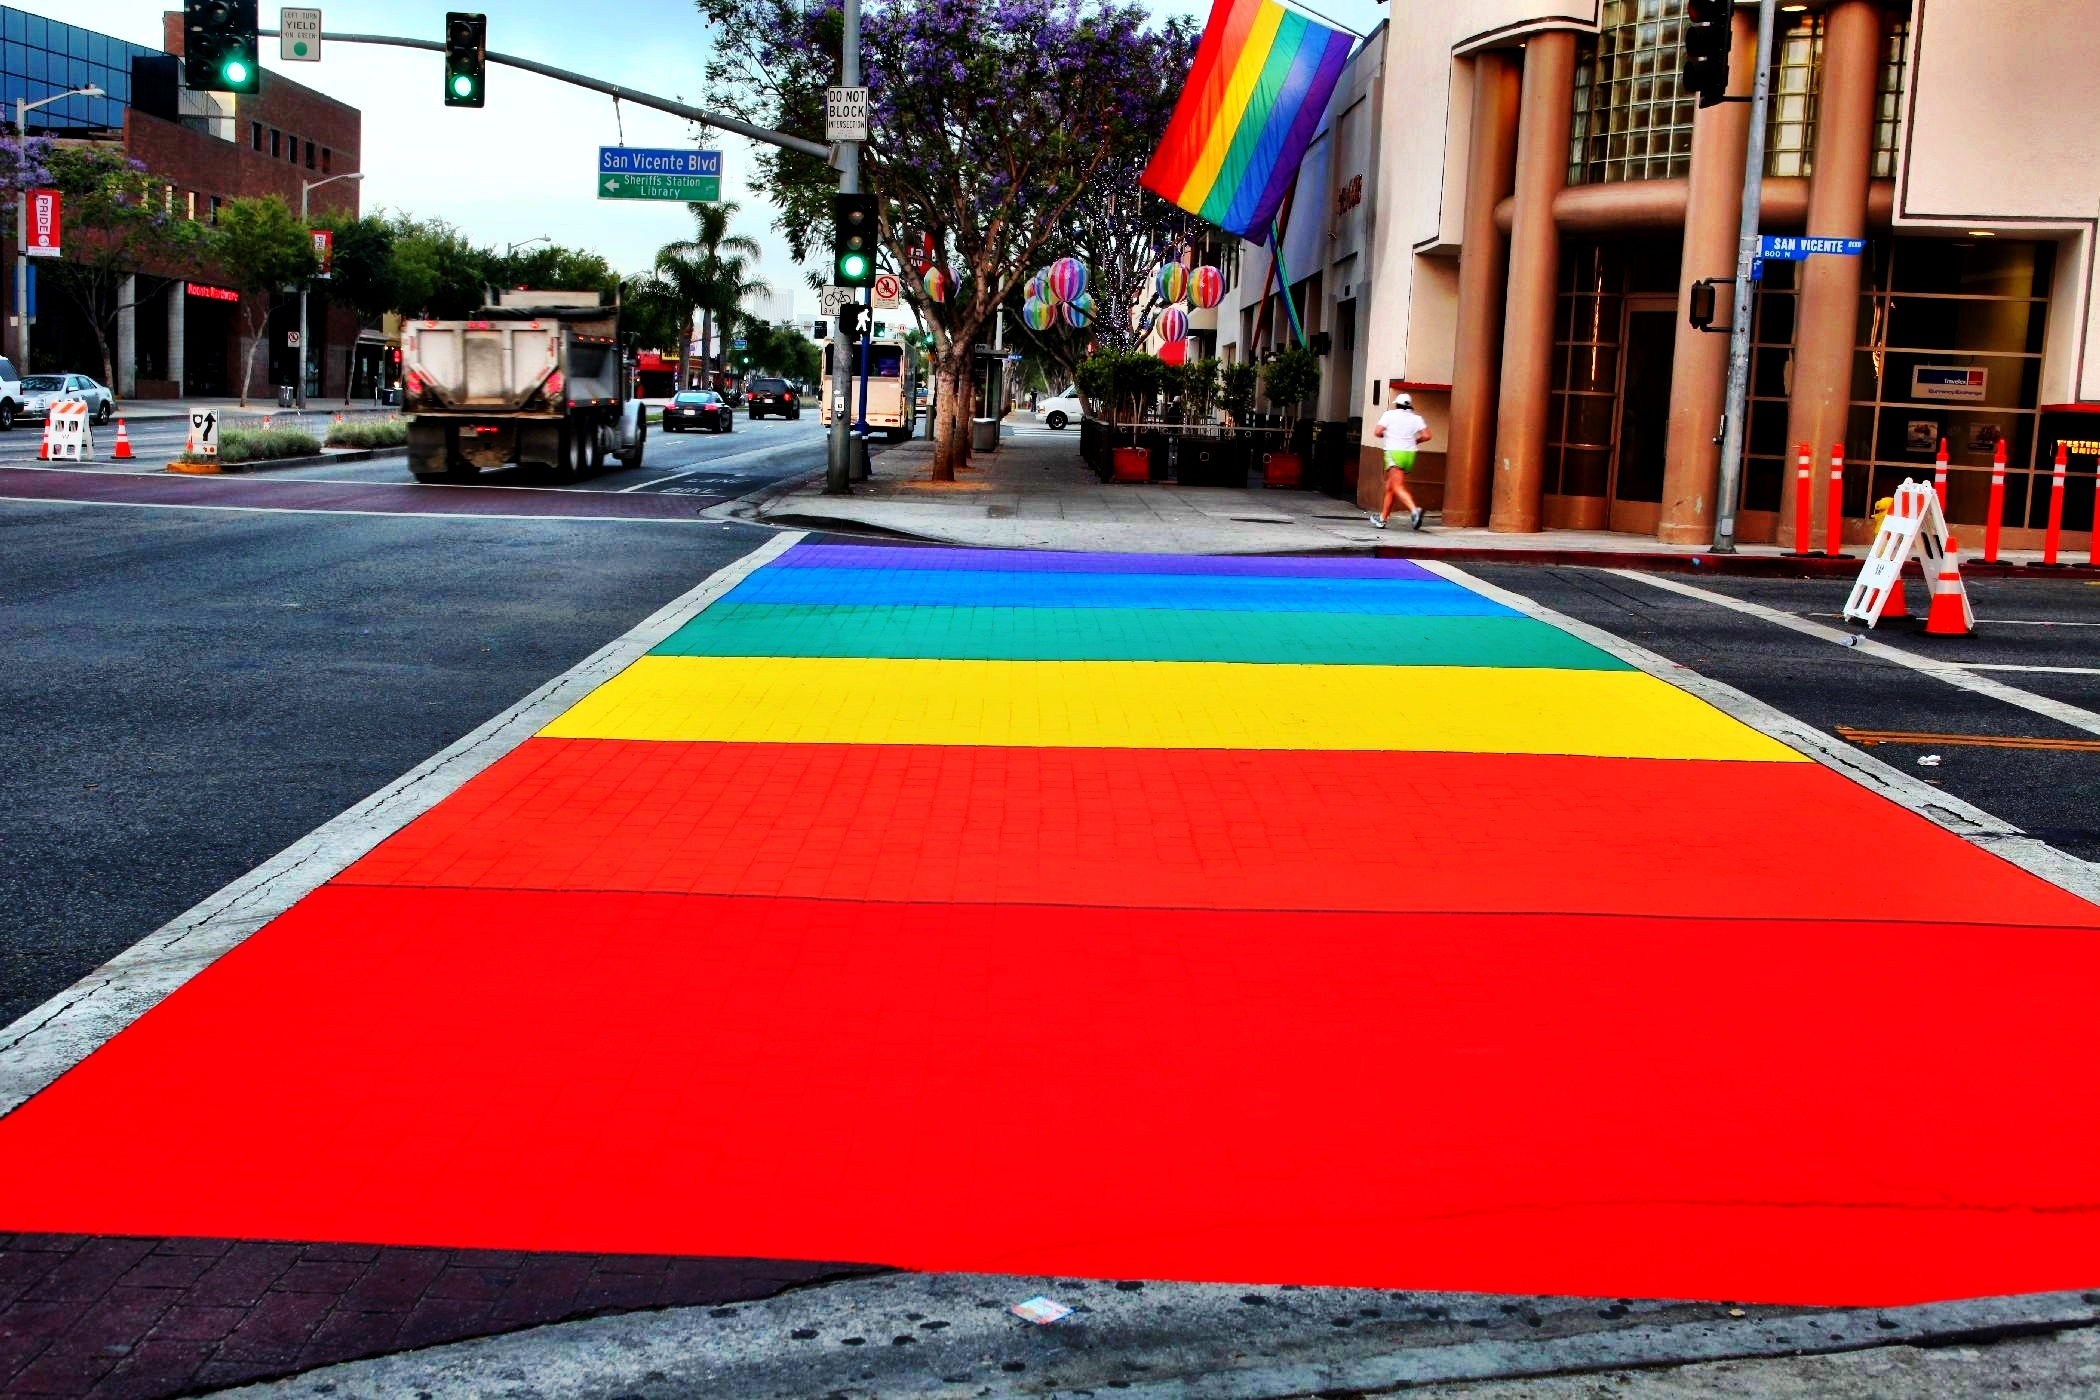 Stratus Bubble Soccer supports West Hollywood pride flag and walkway rainbow